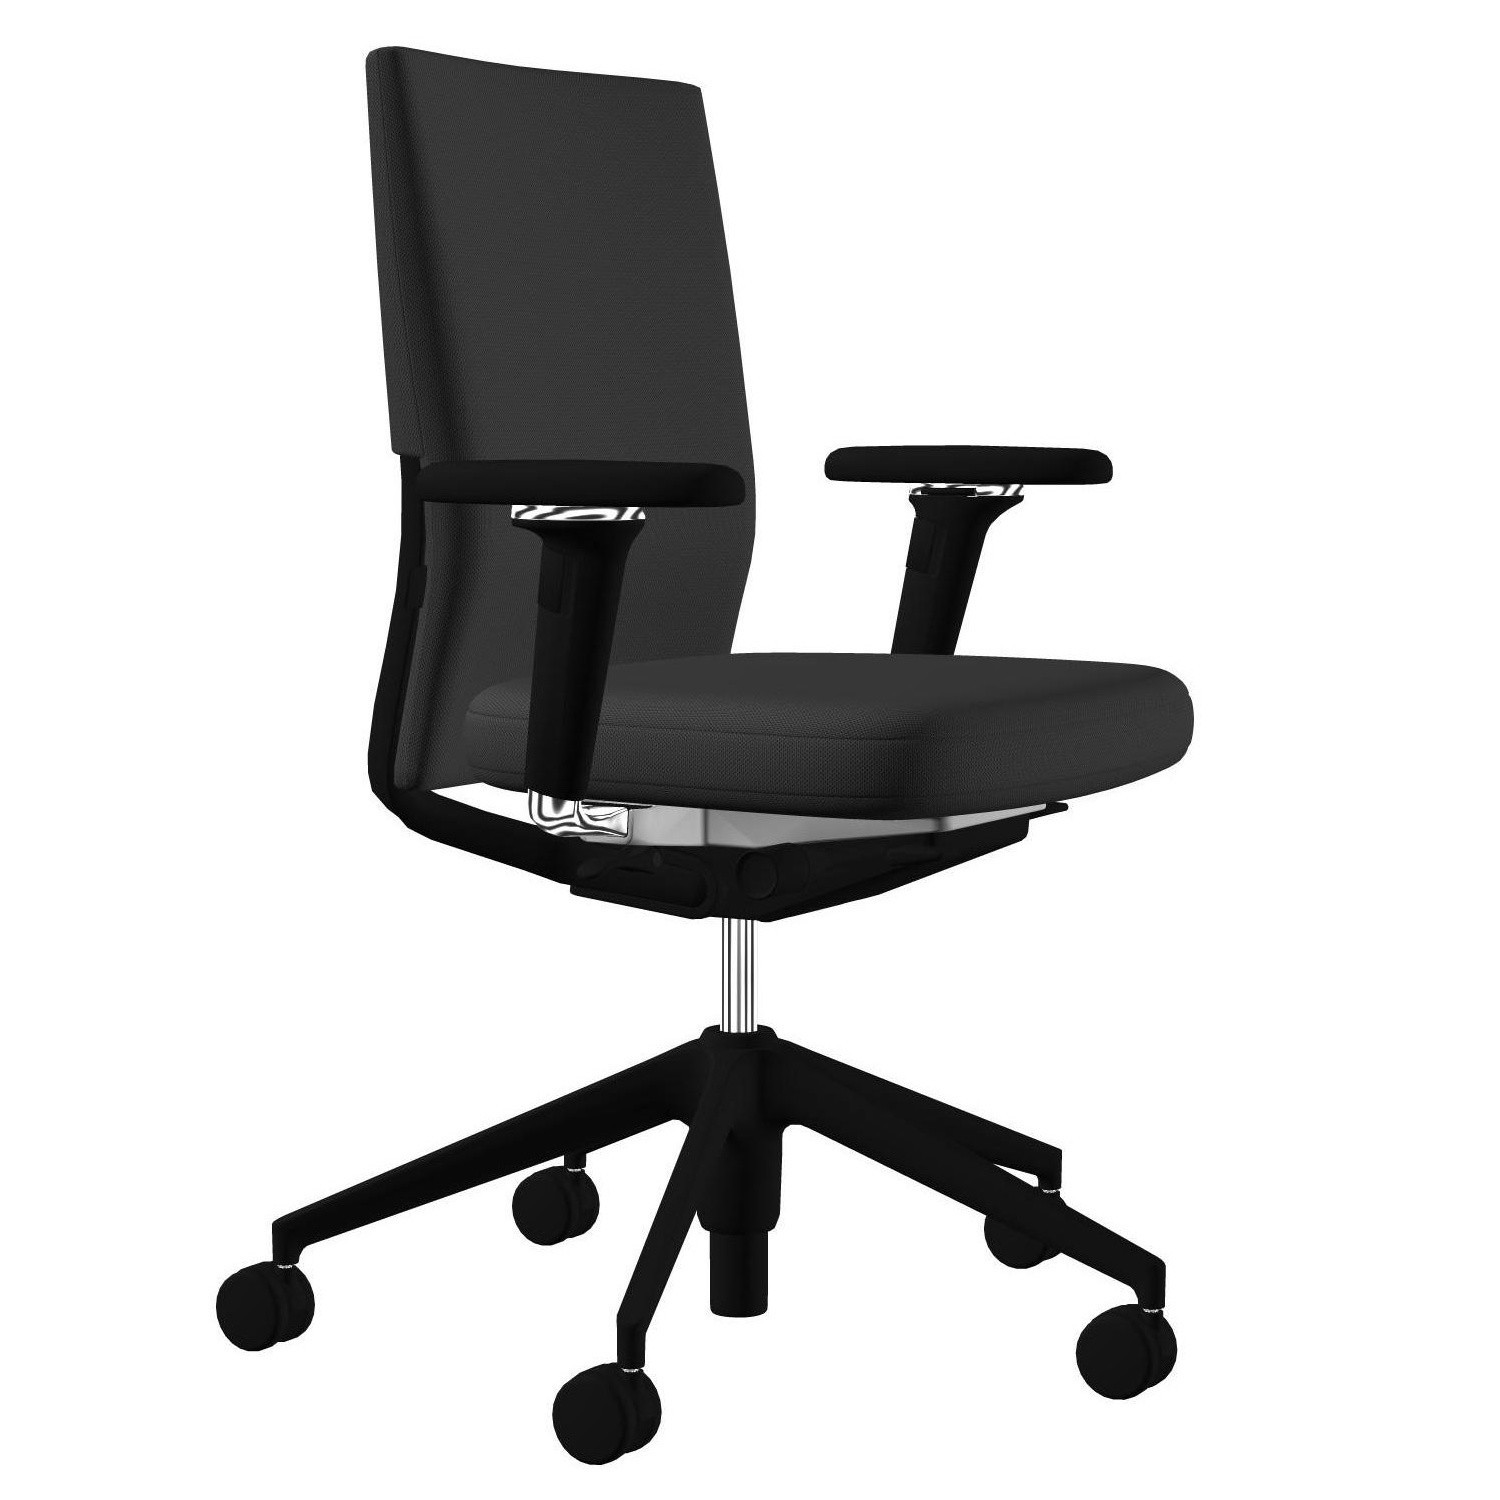 Vitra Office Chair Id Soft Office Chair Black Base